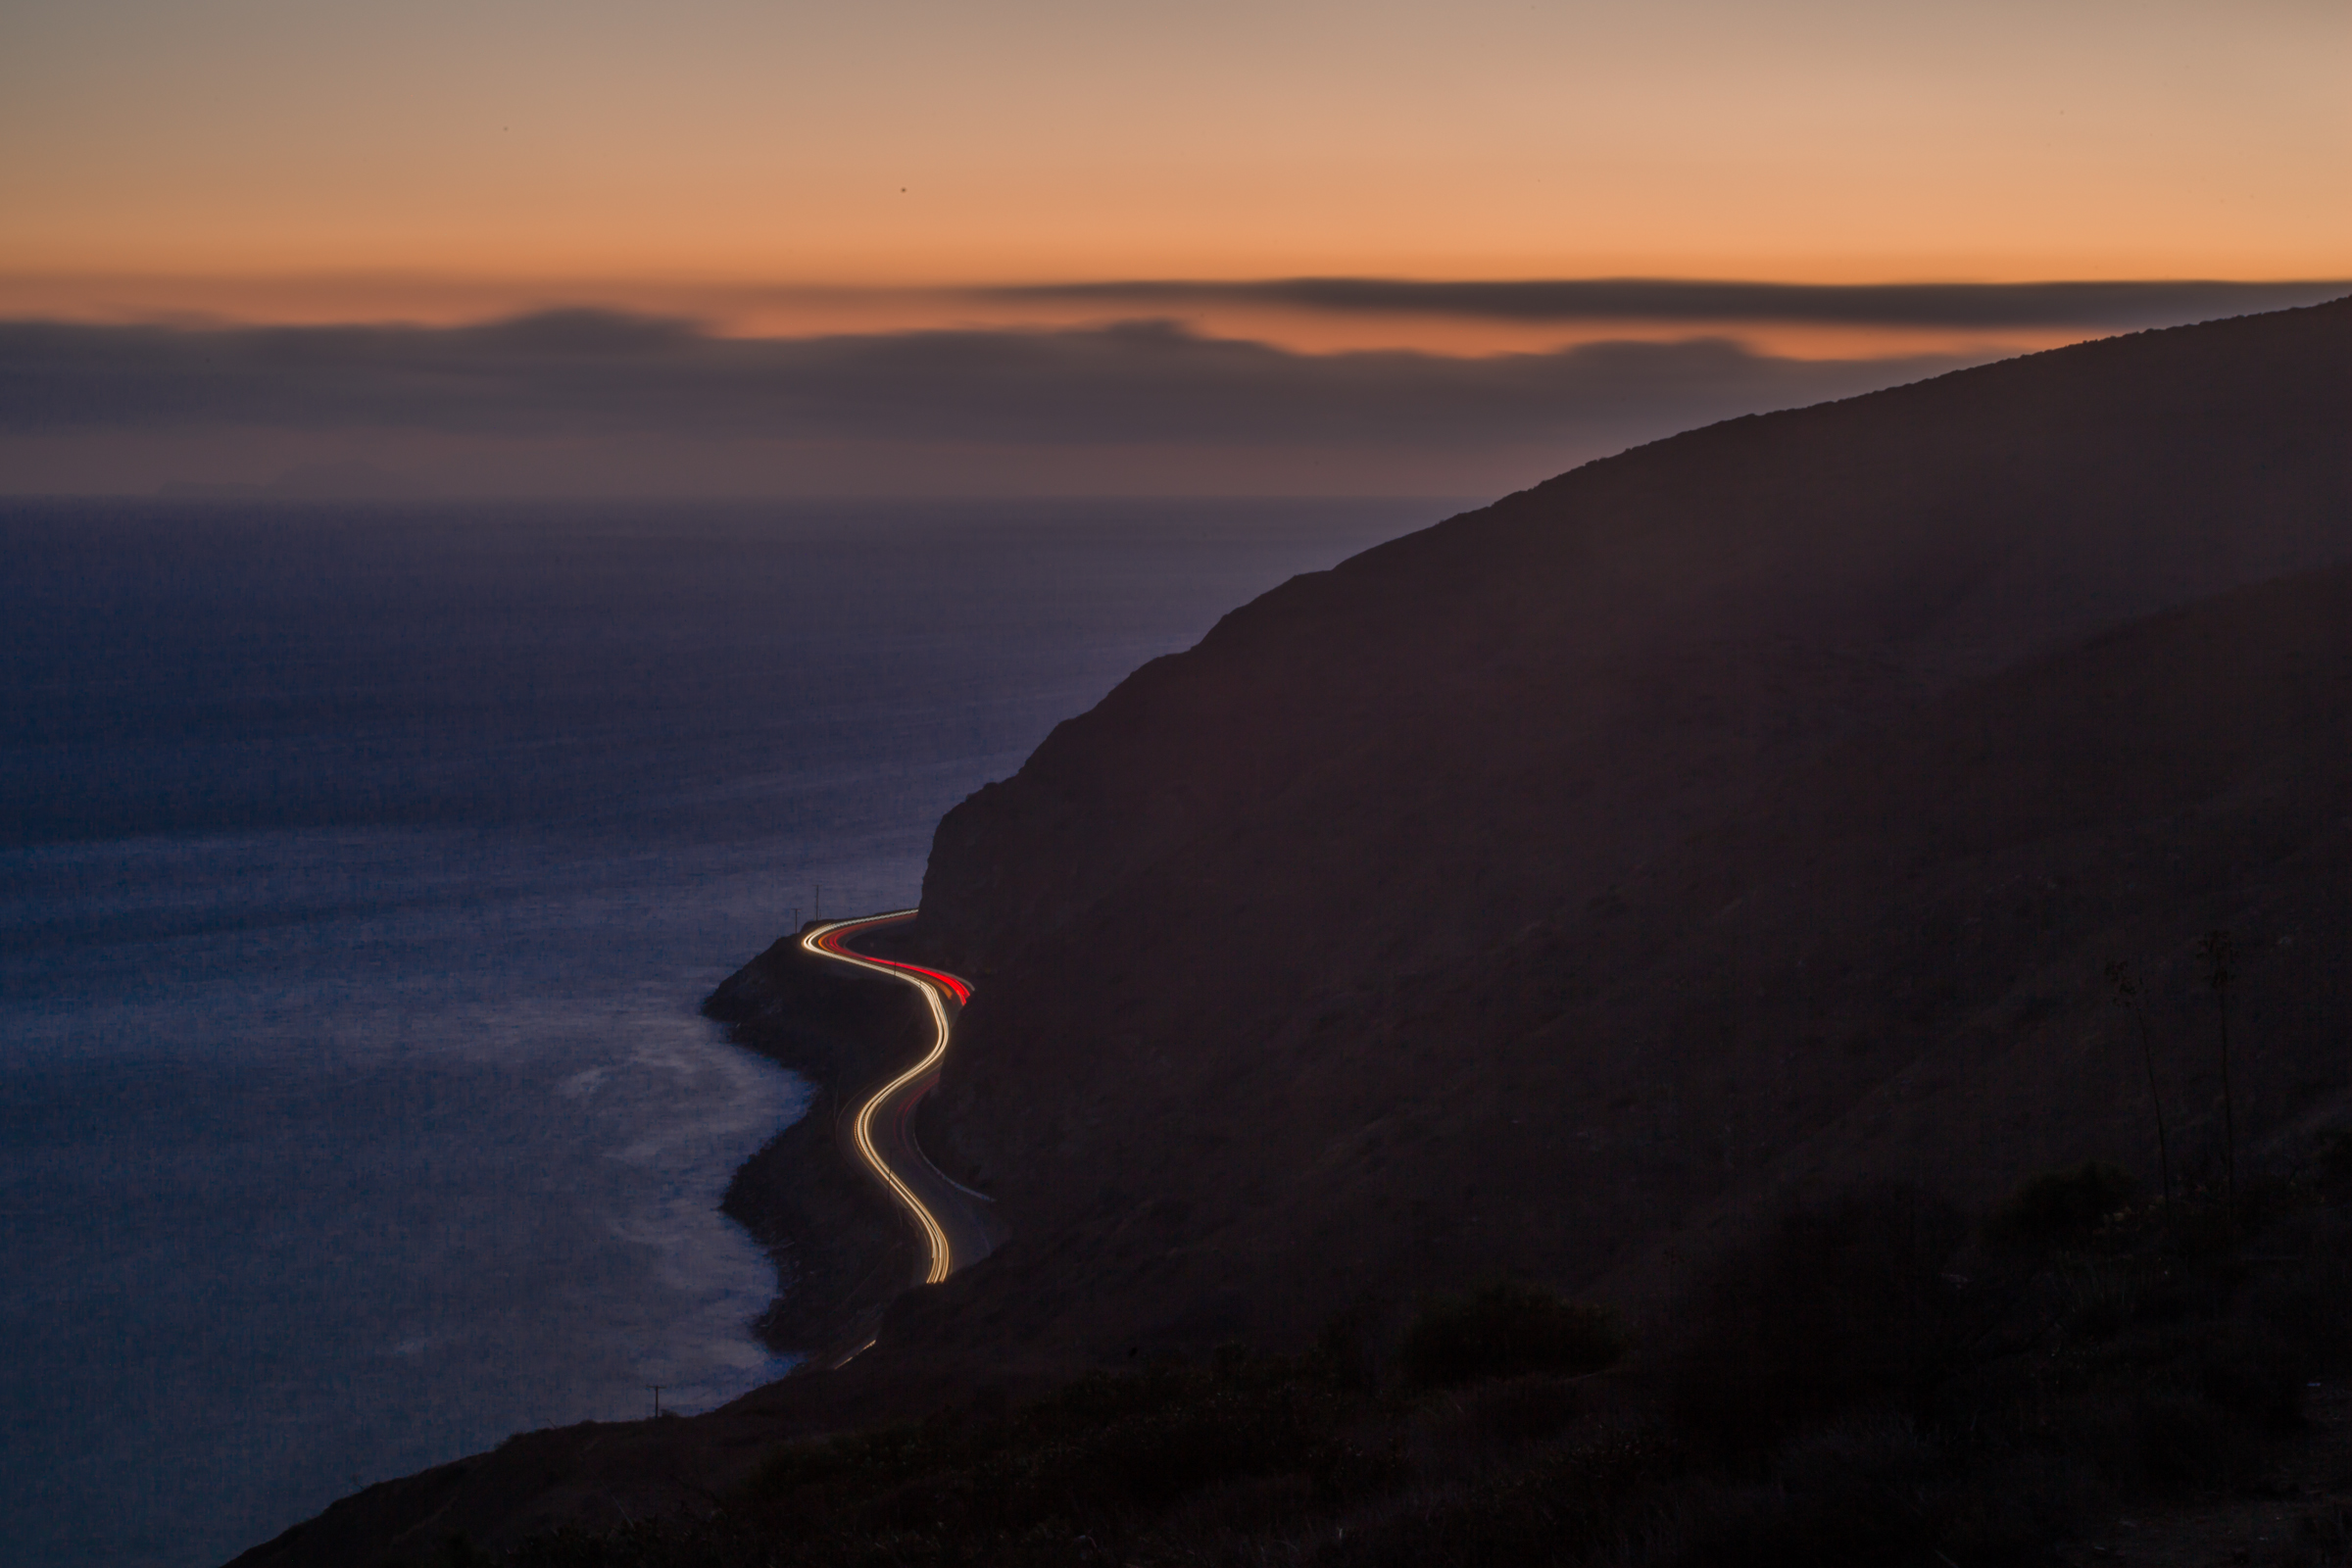 Sunset traffic on the Pacific Coast Highway